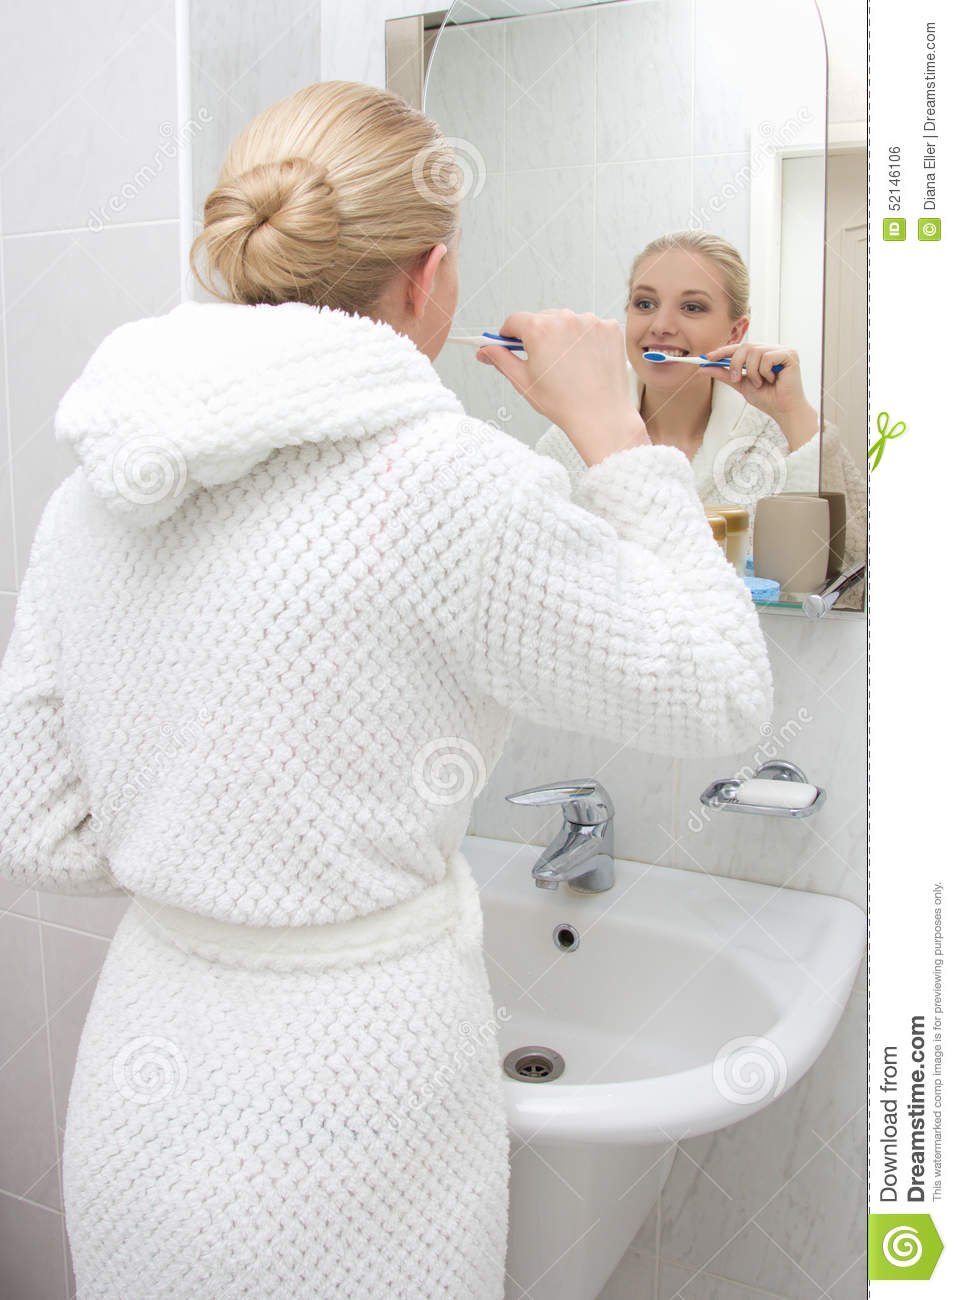 Young woman brushing teeth and looking at mirror in bathroom